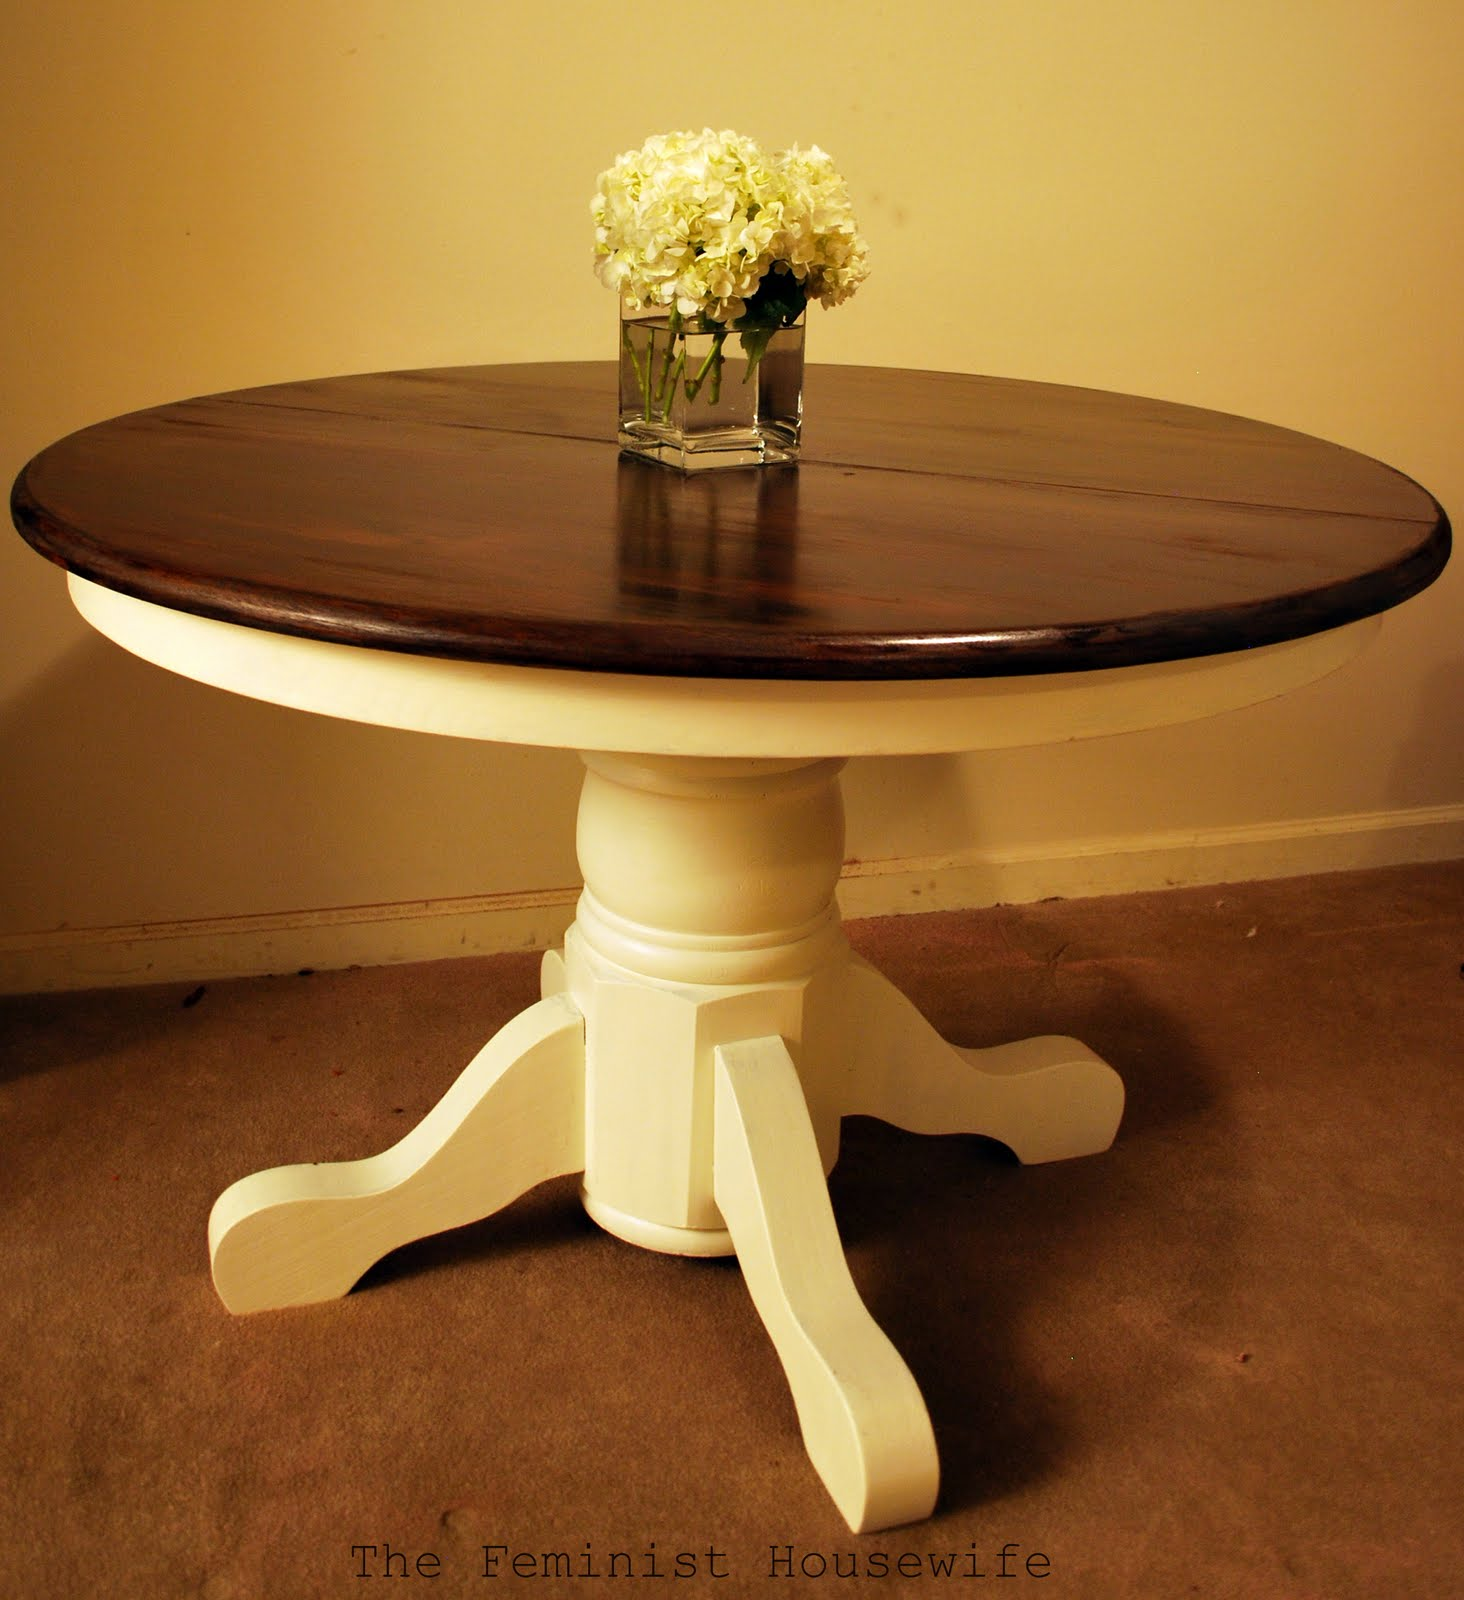 The feminist housewife pedestal table faq - Kitchen table ideas ...